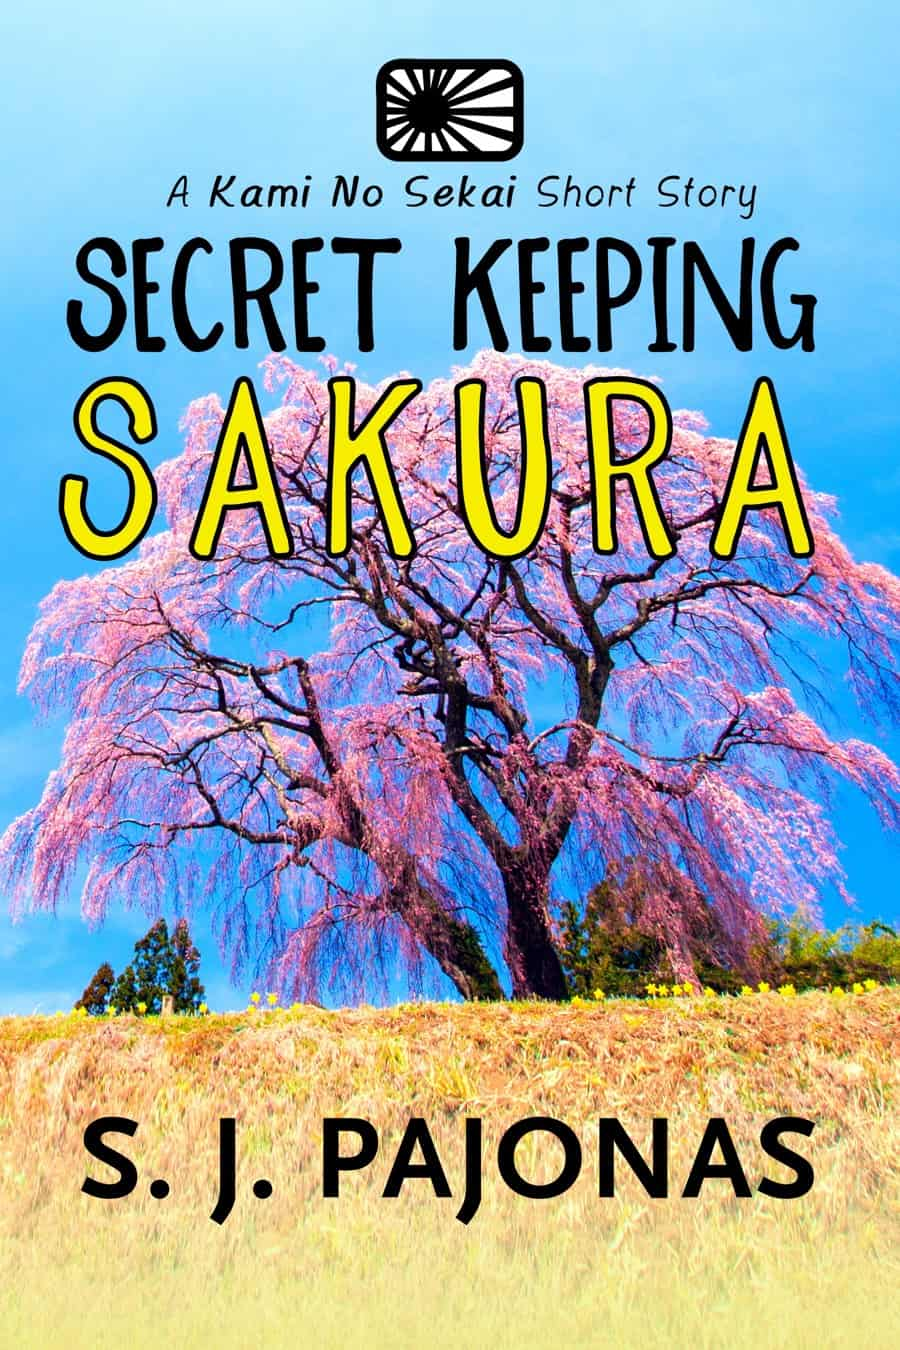 The fifth, and last, story in the Kami No Sekai series, SECRET KEEPING SAKURA, is now available!